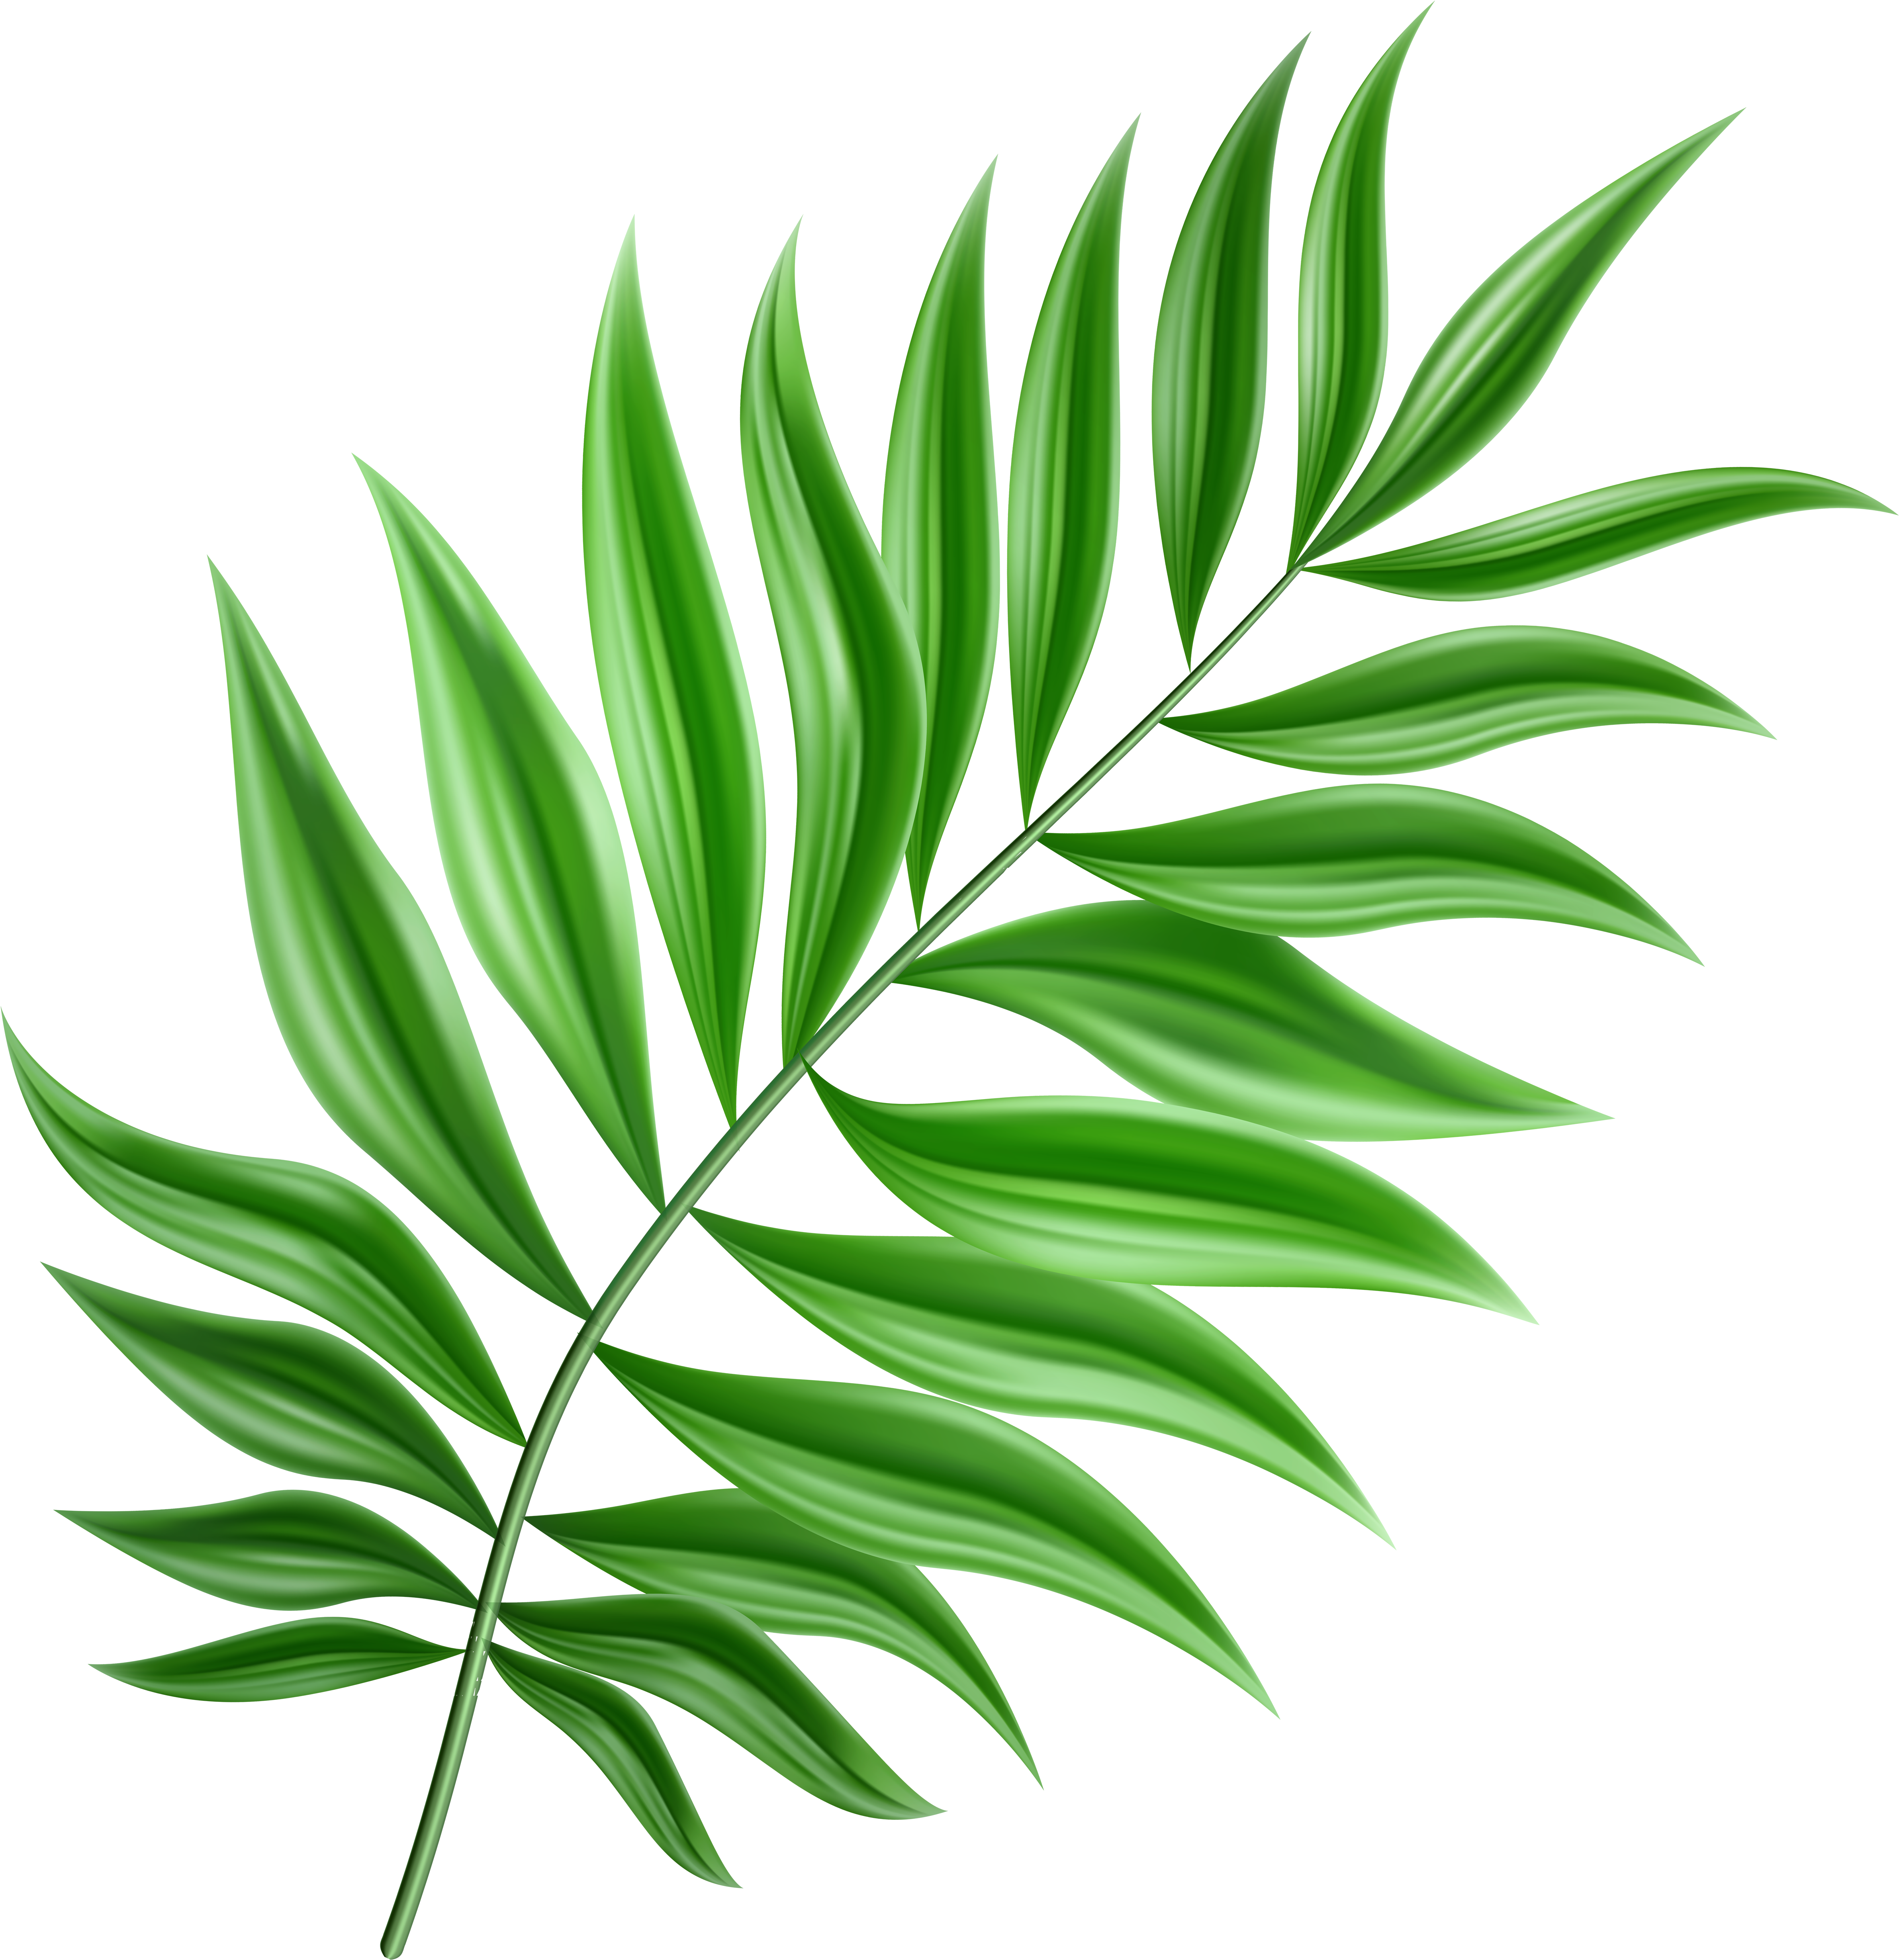 Green Palm Leaf Png Clipart Transparent Png - Full Size ...